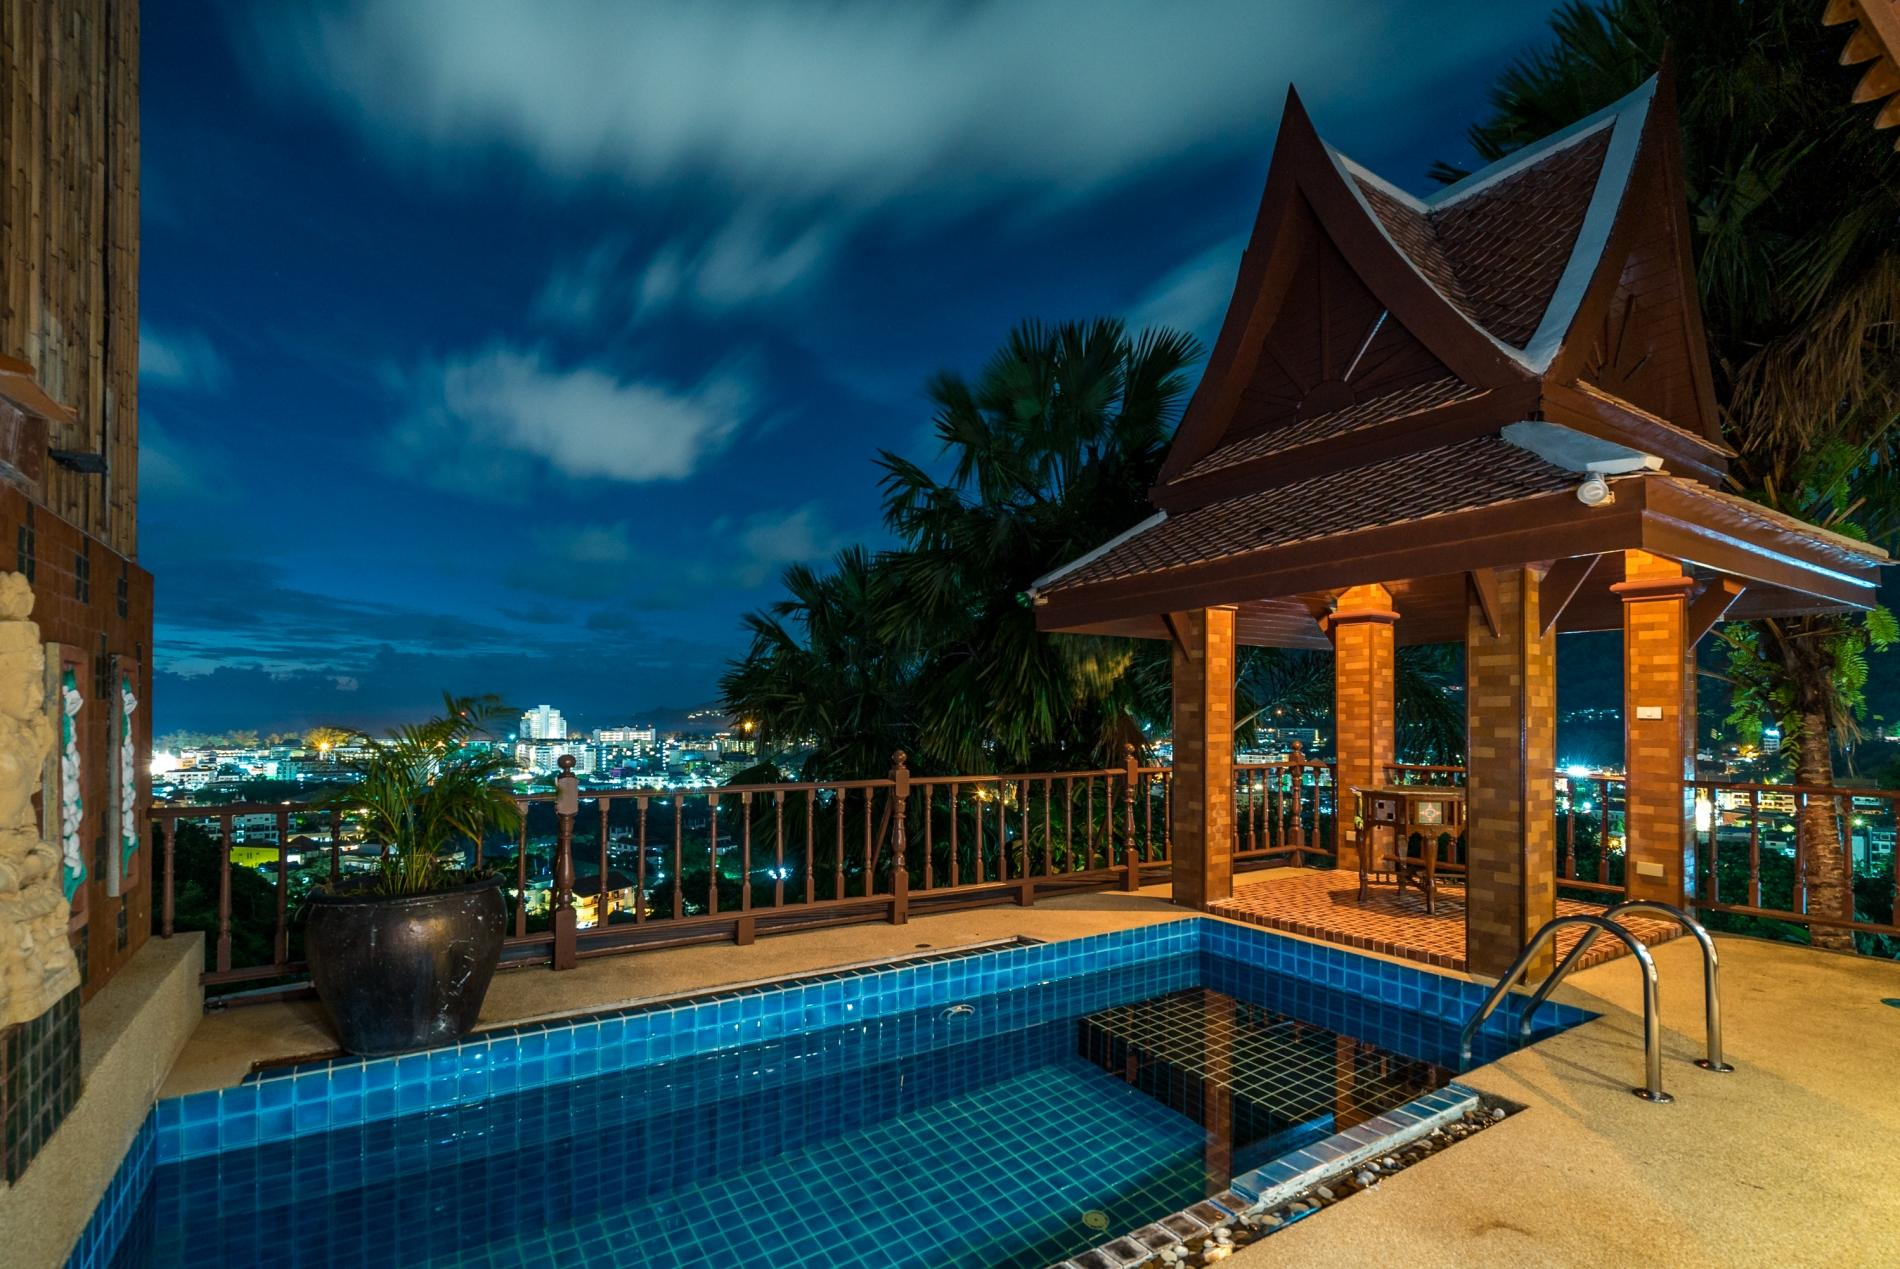 50pee - Seaview pool villa in Patong, boxing bag, foosball table, darts and fun! photo 20176599